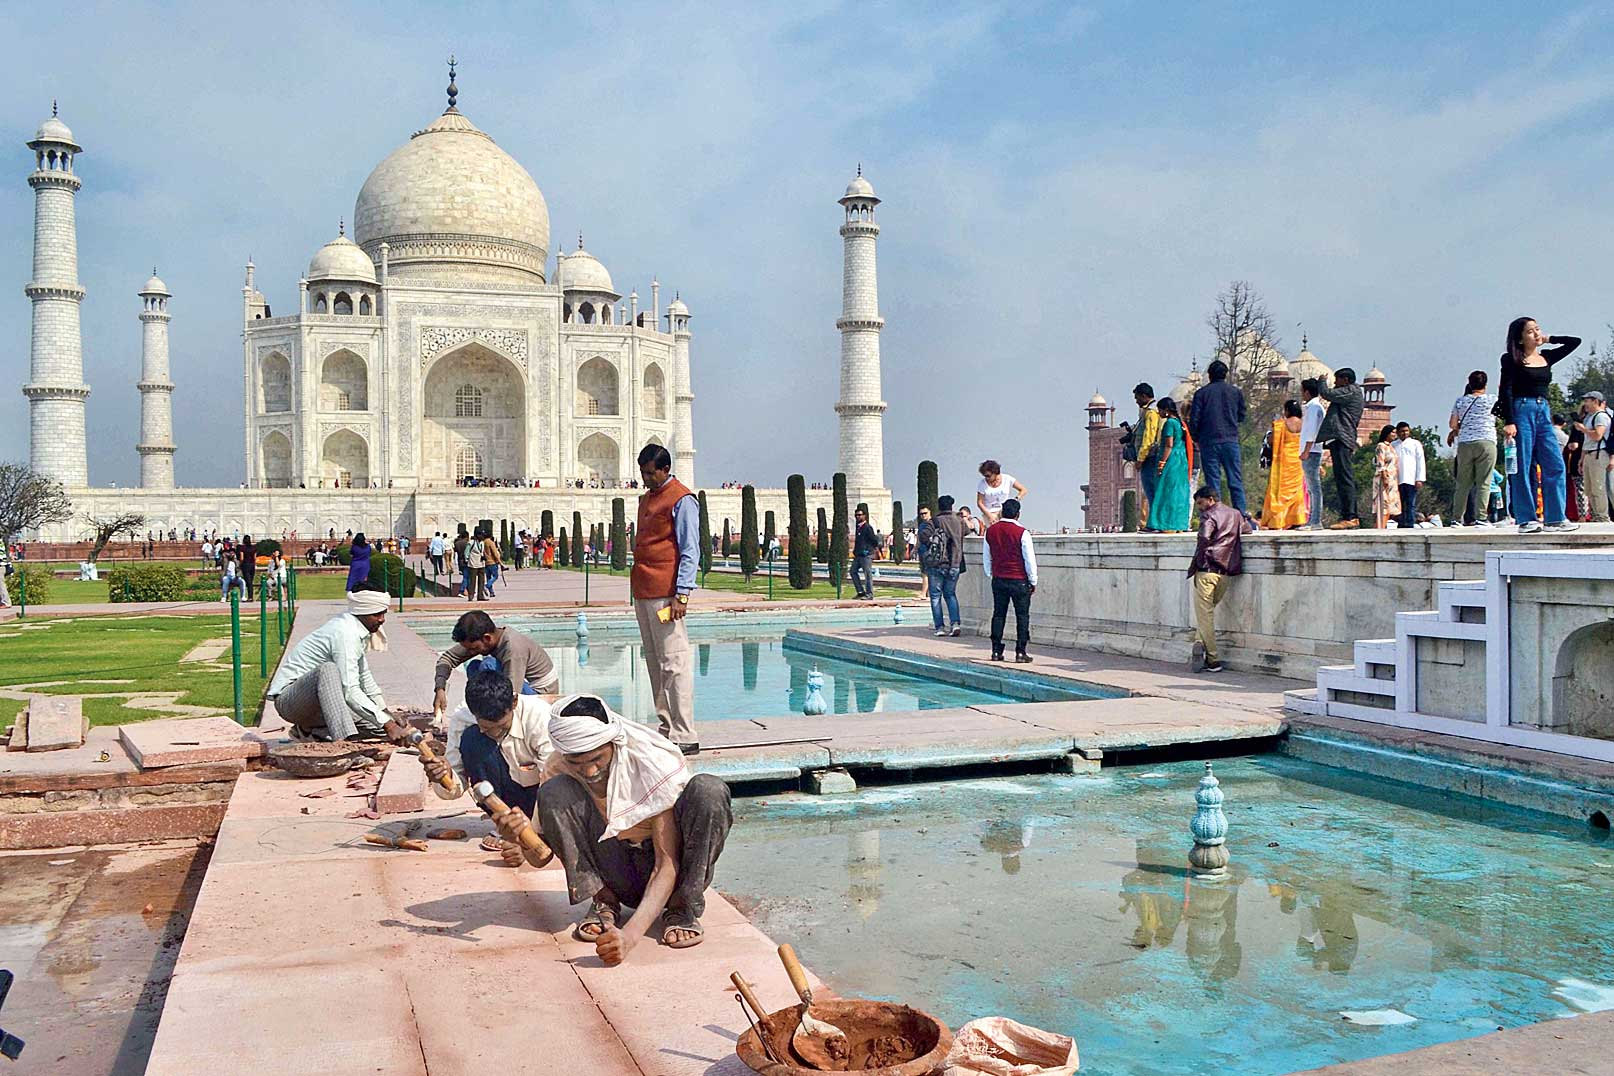 Workers fix tiles near the fountains at the Taj Mahal on Thursday, ahead of US President Donald Trump's visit.